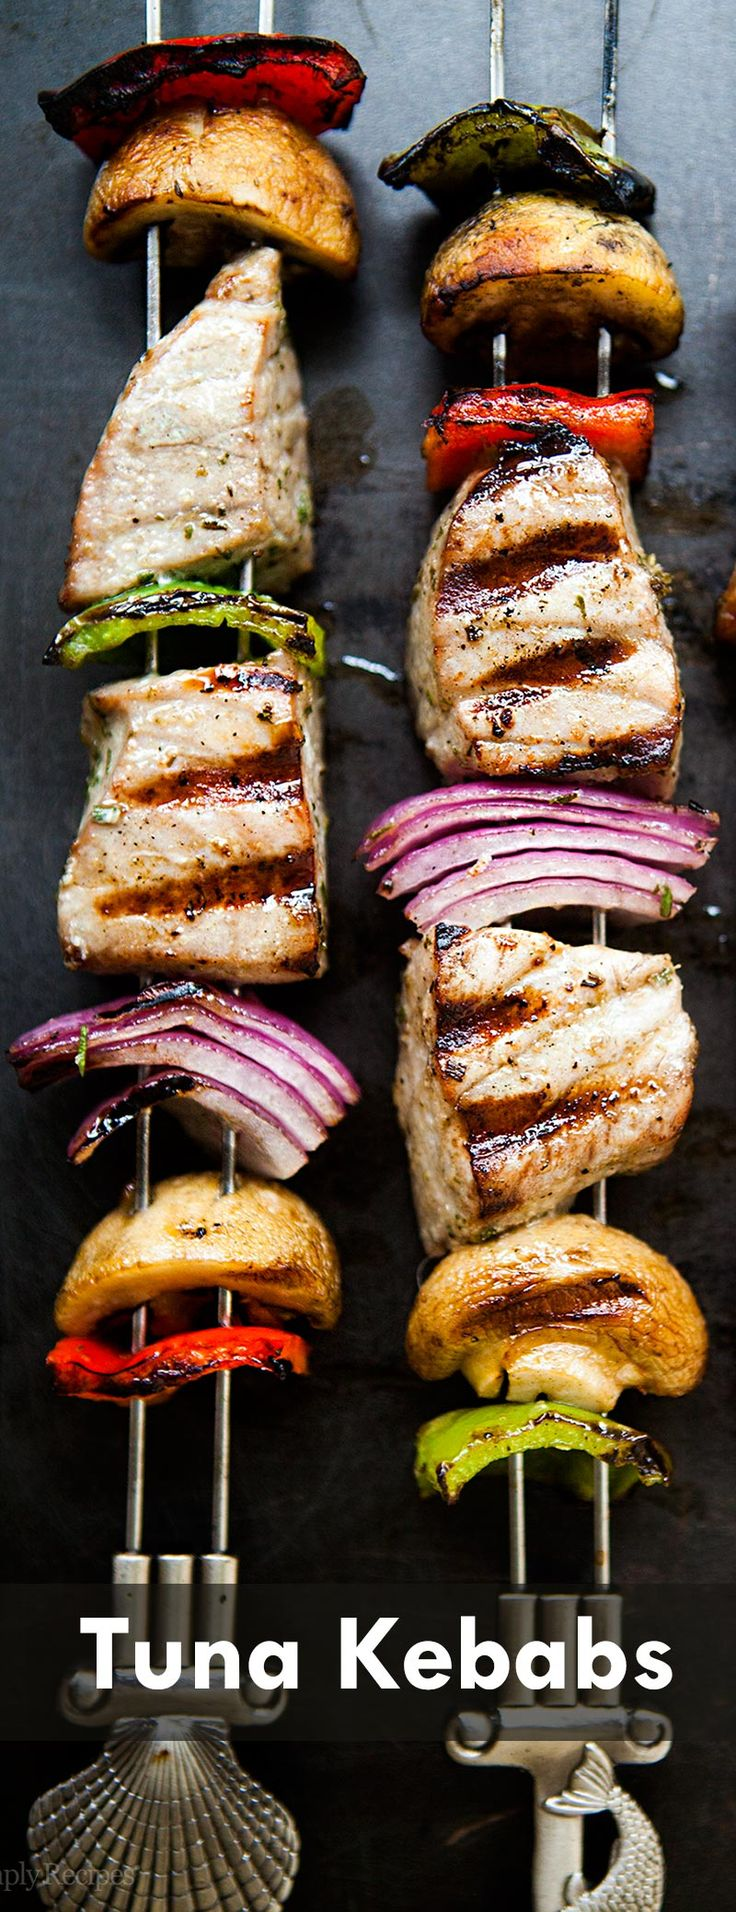 Get your grill on with tuna kabobs! skewers of marinated fresh tuna, onions, bell peppers, and mushrooms. On SimplyRecipes.com #paleo #healthy #glutenfree